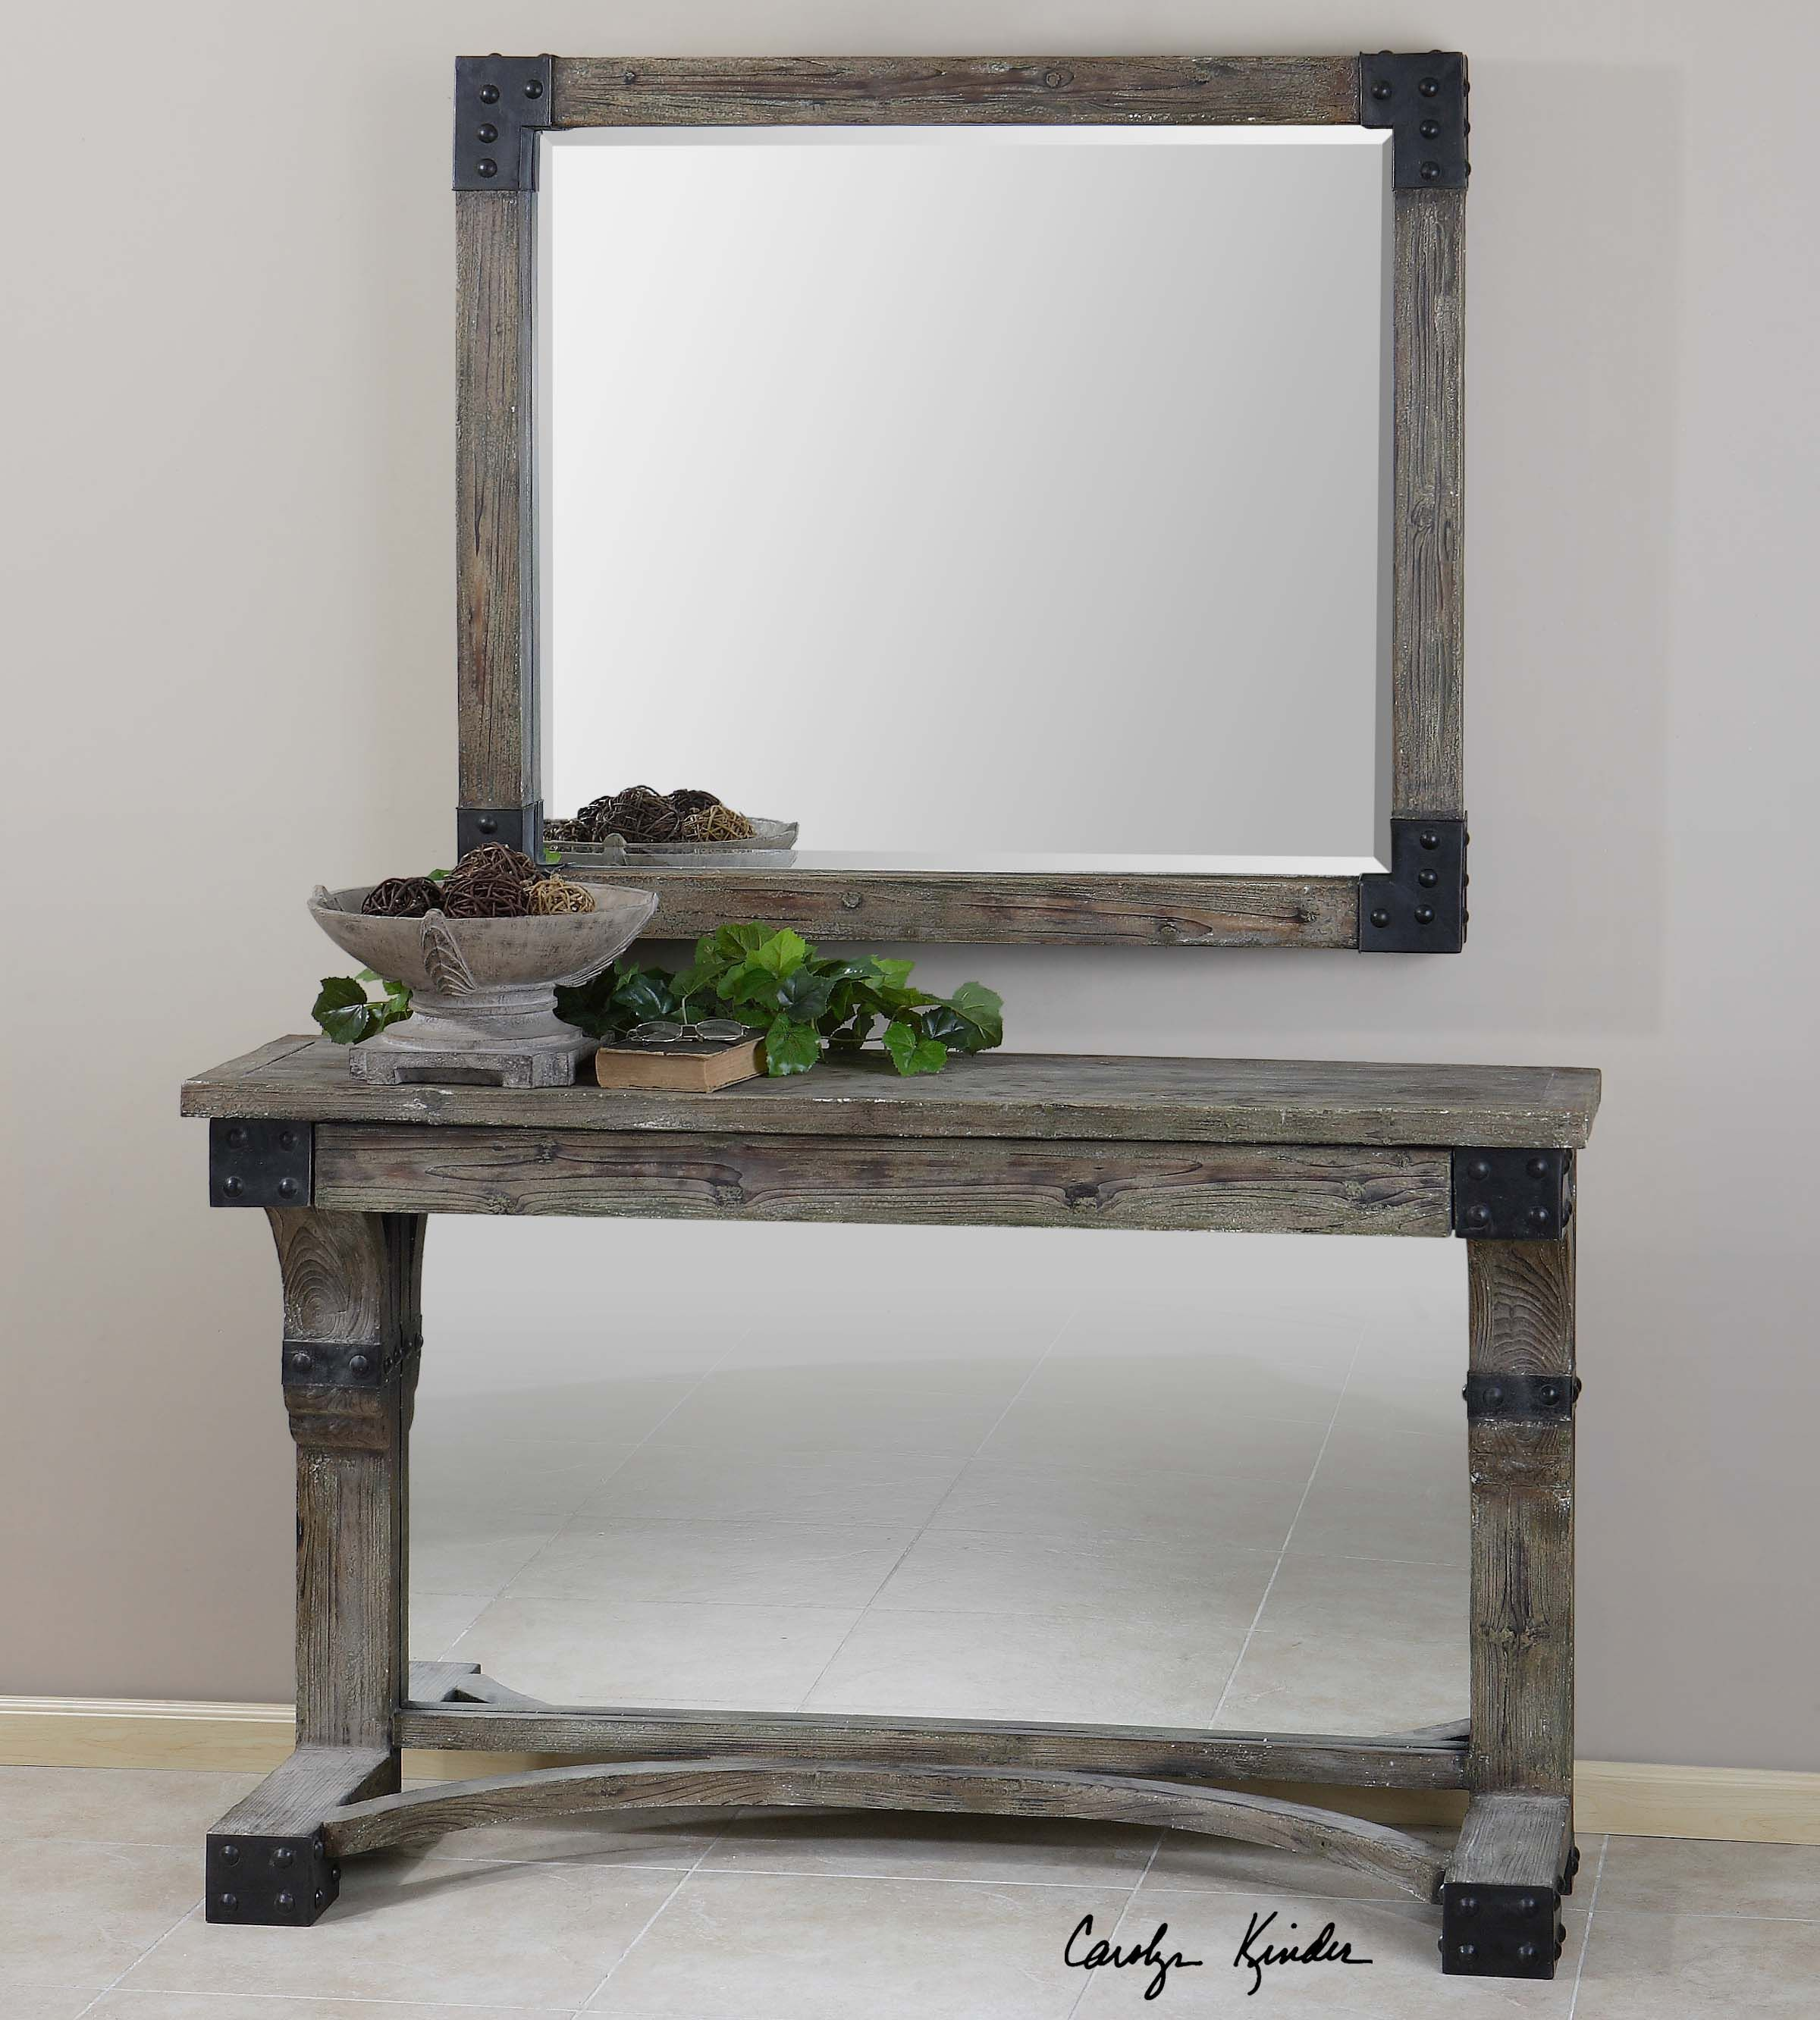 rustic black wood frame. Nelo - Weathered Wood Frame With An Aged Gray Wash And Rustic Black Corner Accents.